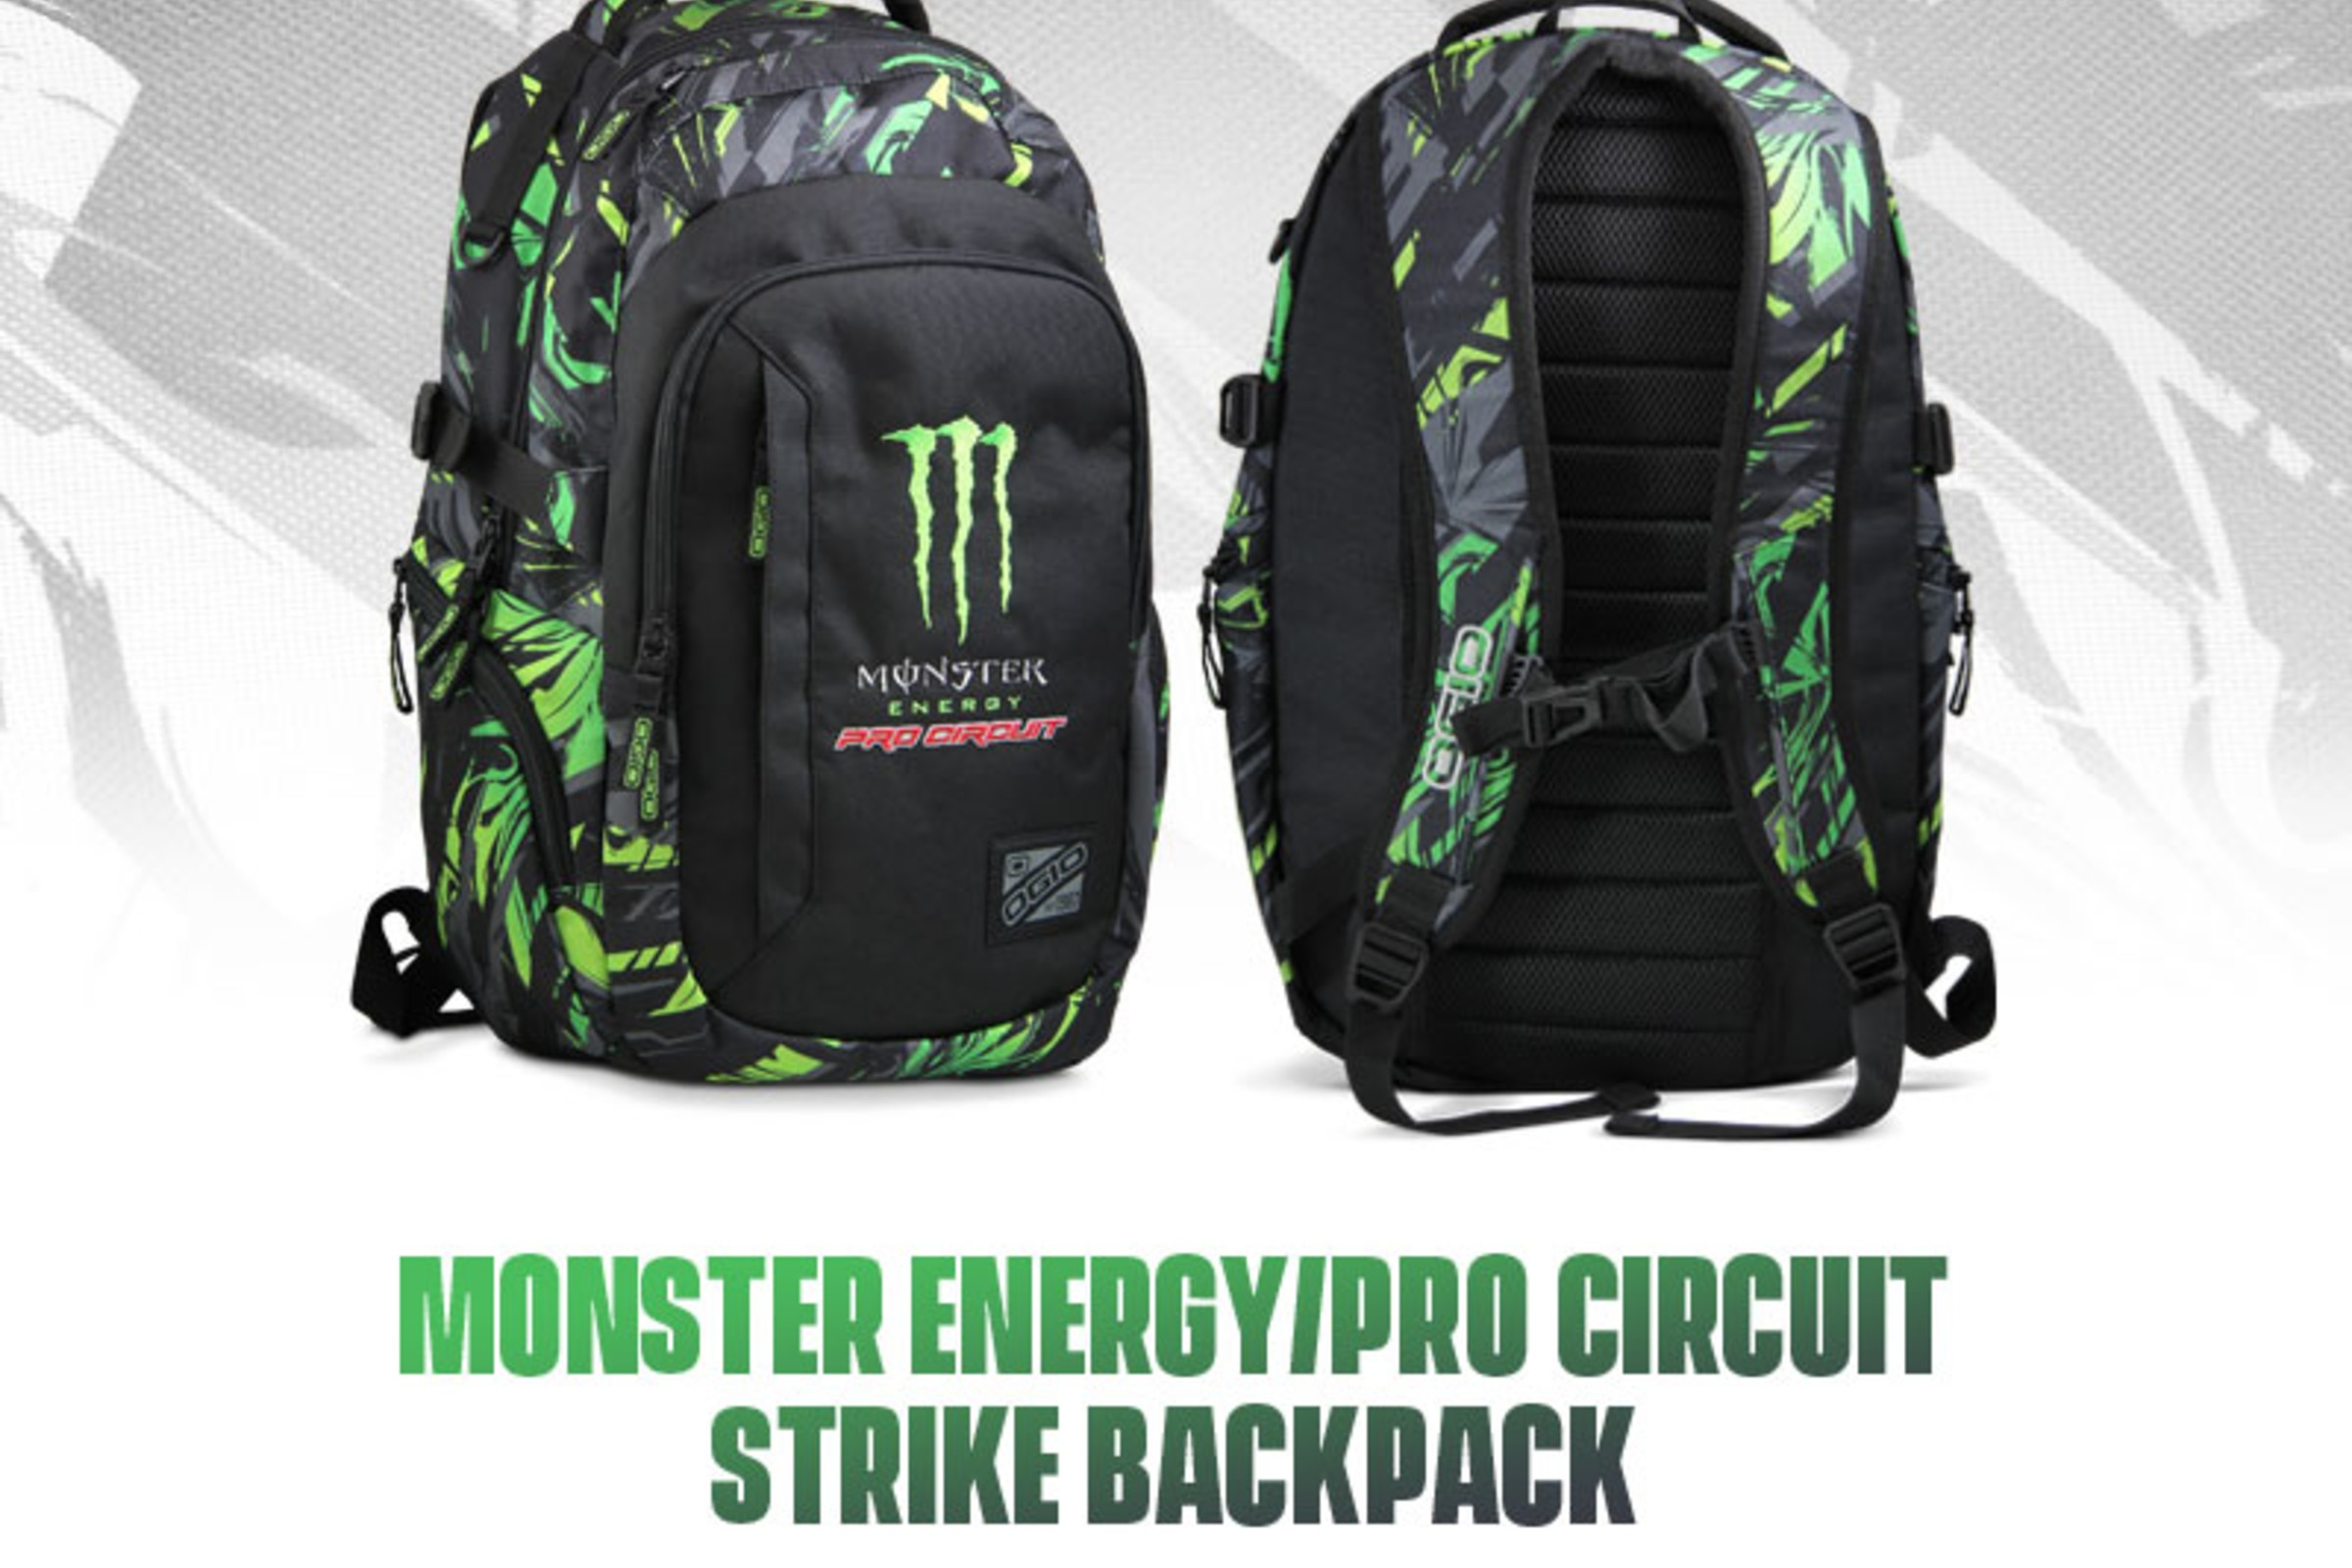 Monster Energy/Pro Circuit Strike Backpack Available now